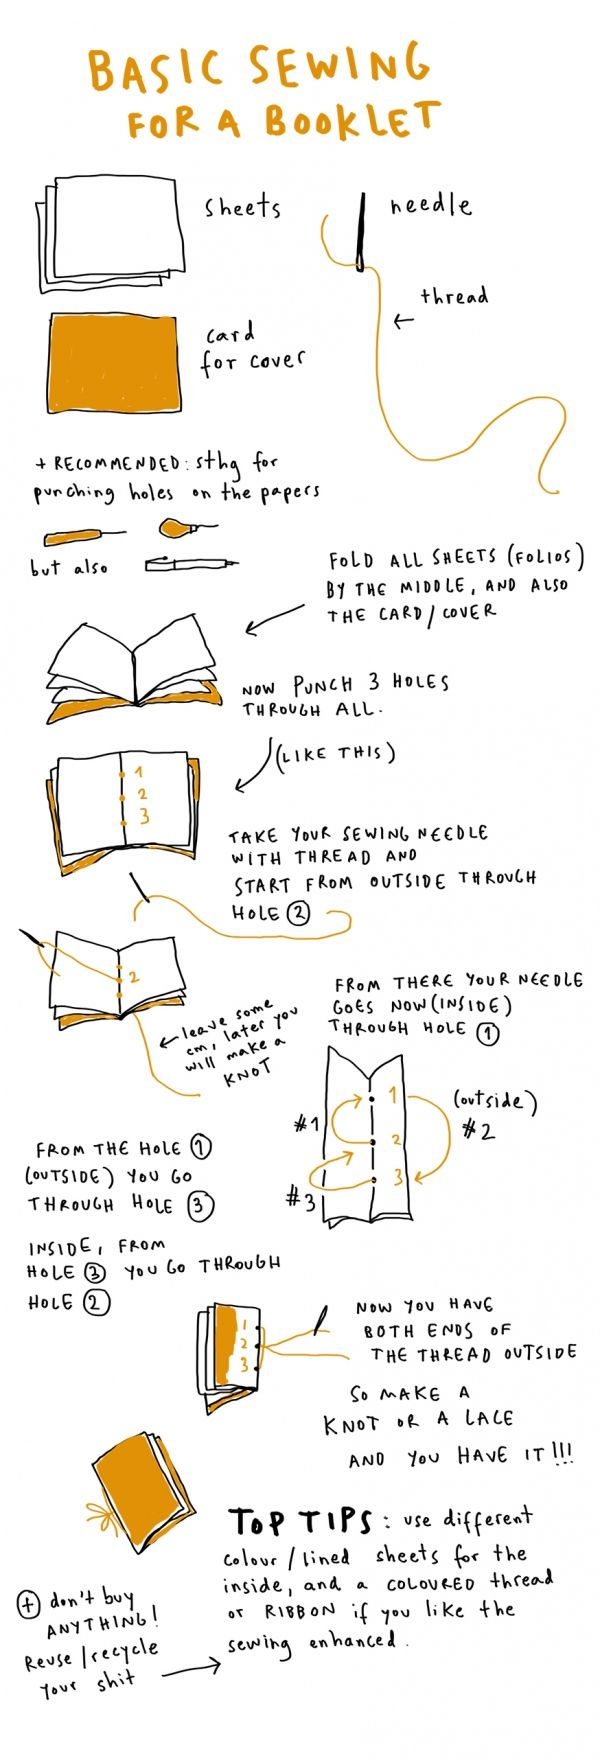 Basic Sewing for a Booklet: Bookbinding Instructions #2 / Merge Leon